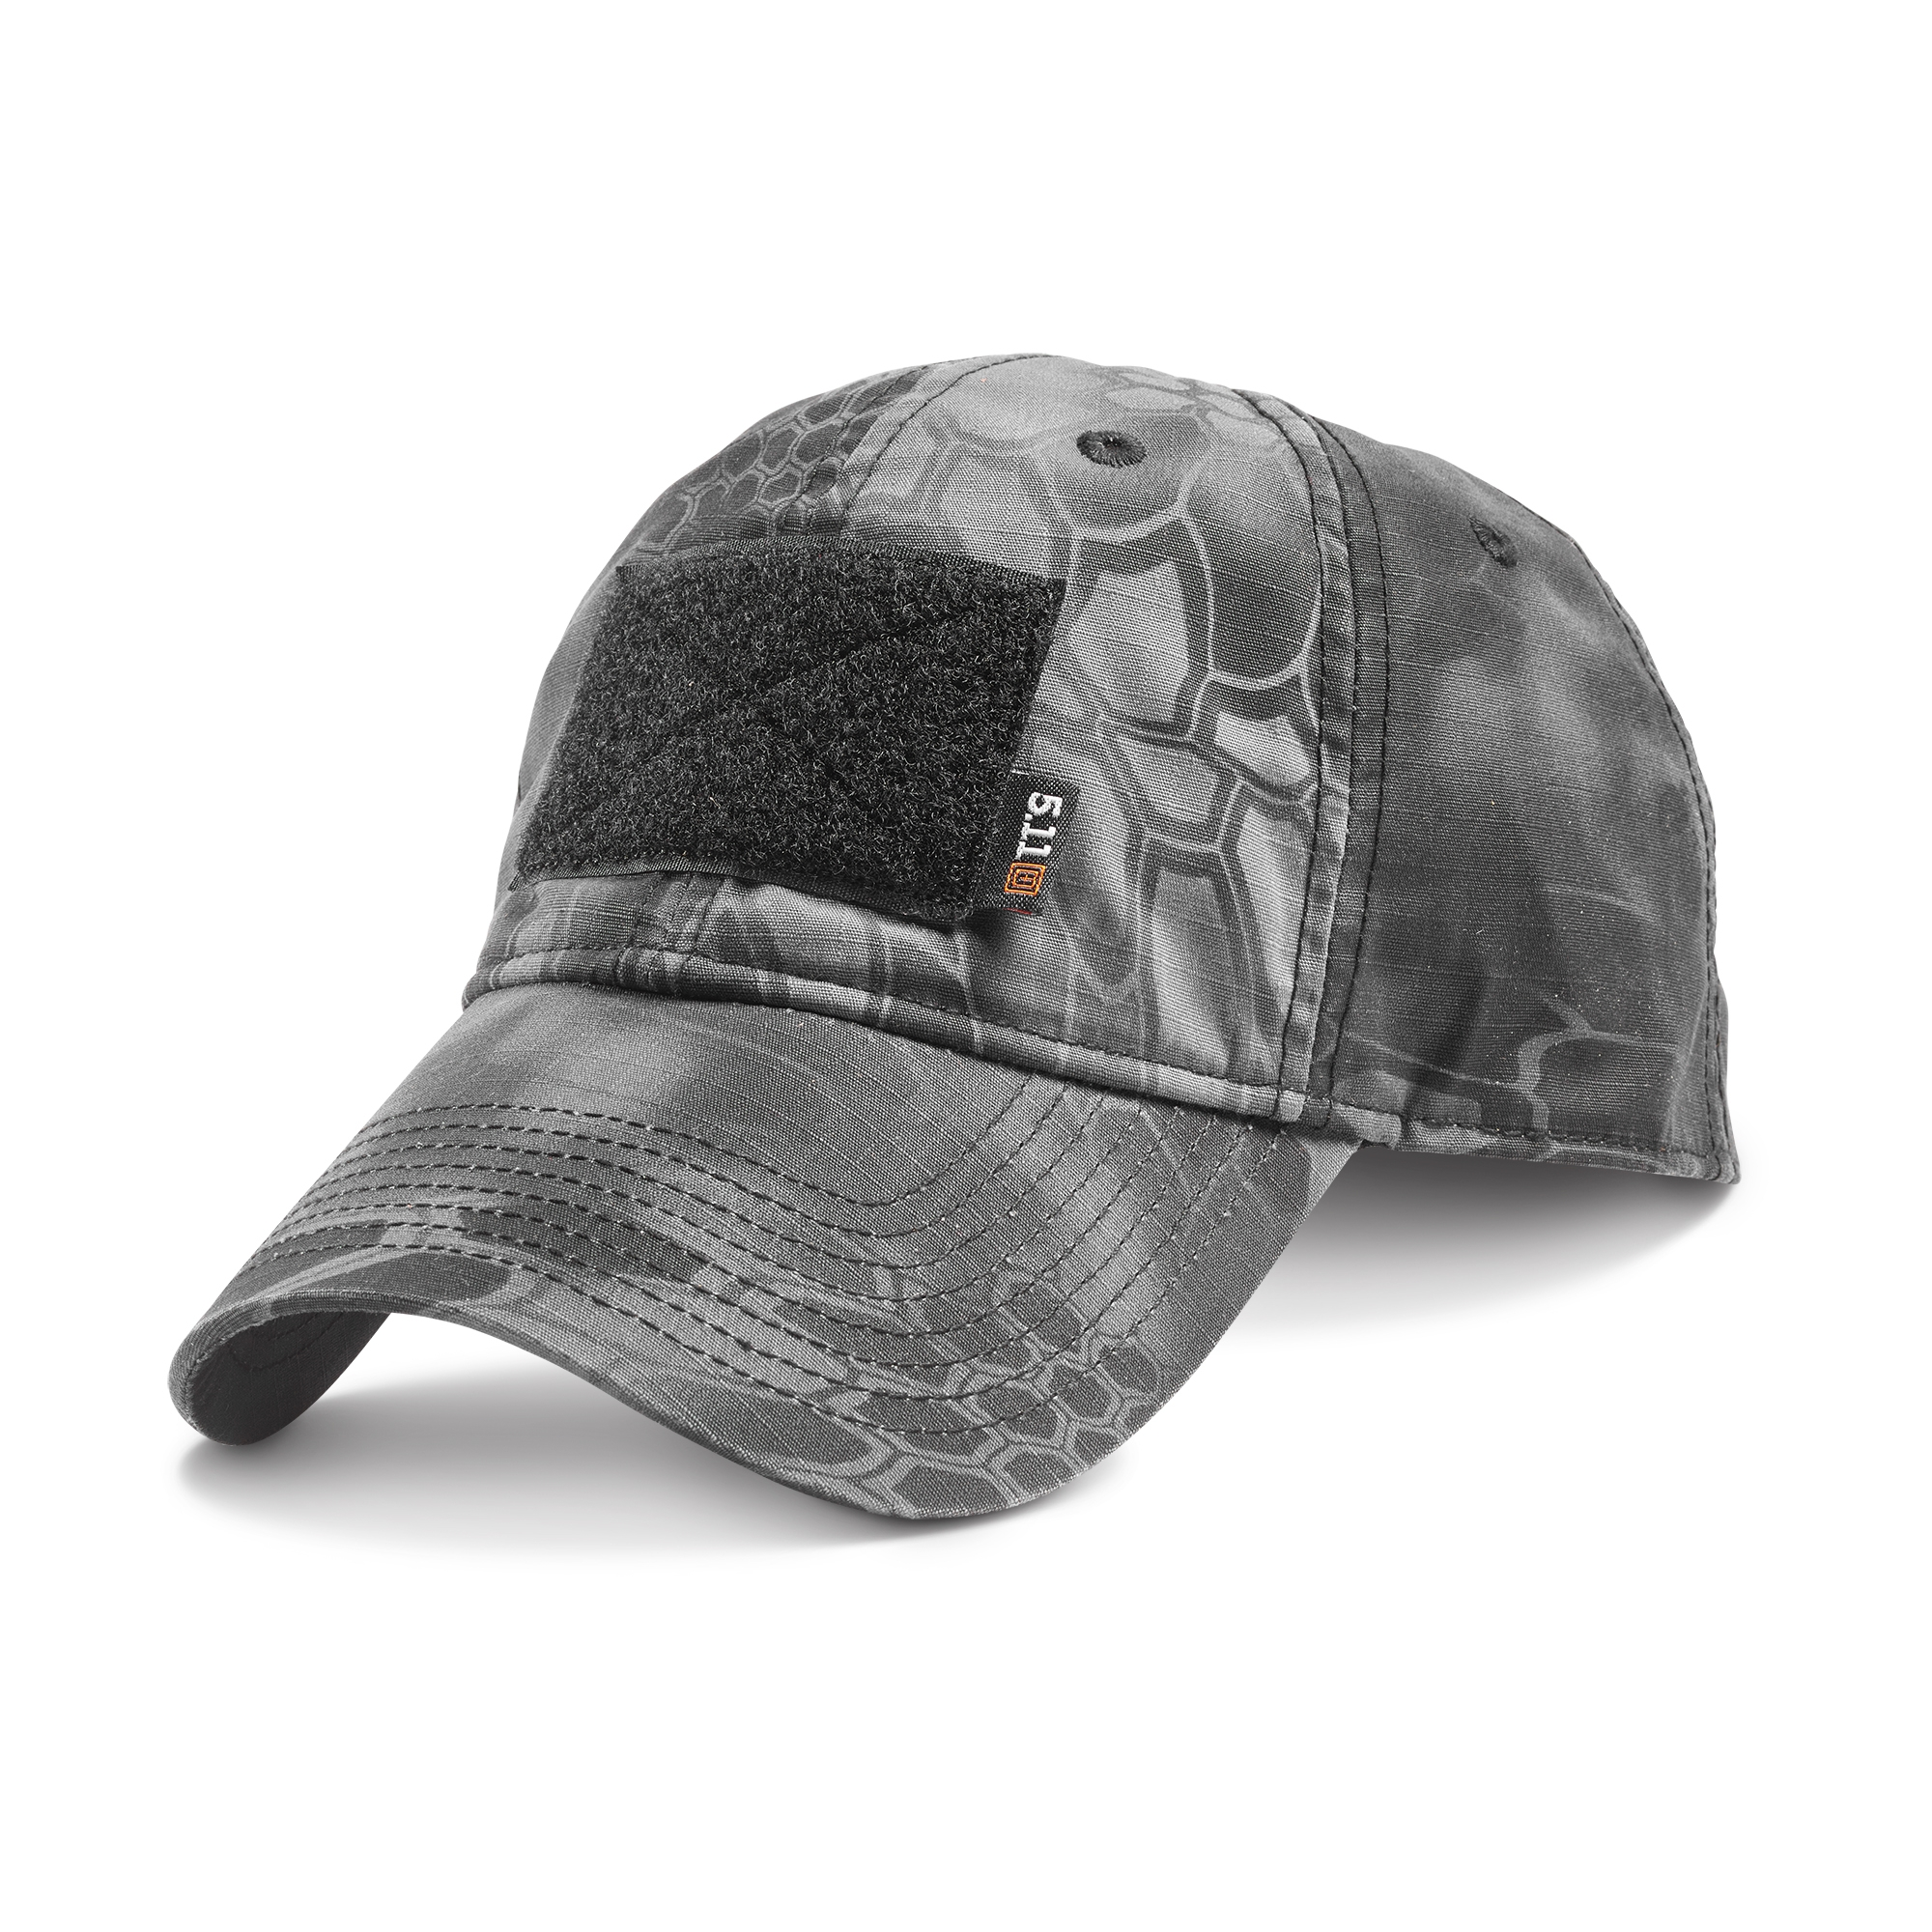 ebf77724314 Kryptek® Cap - 5.11 Tactical